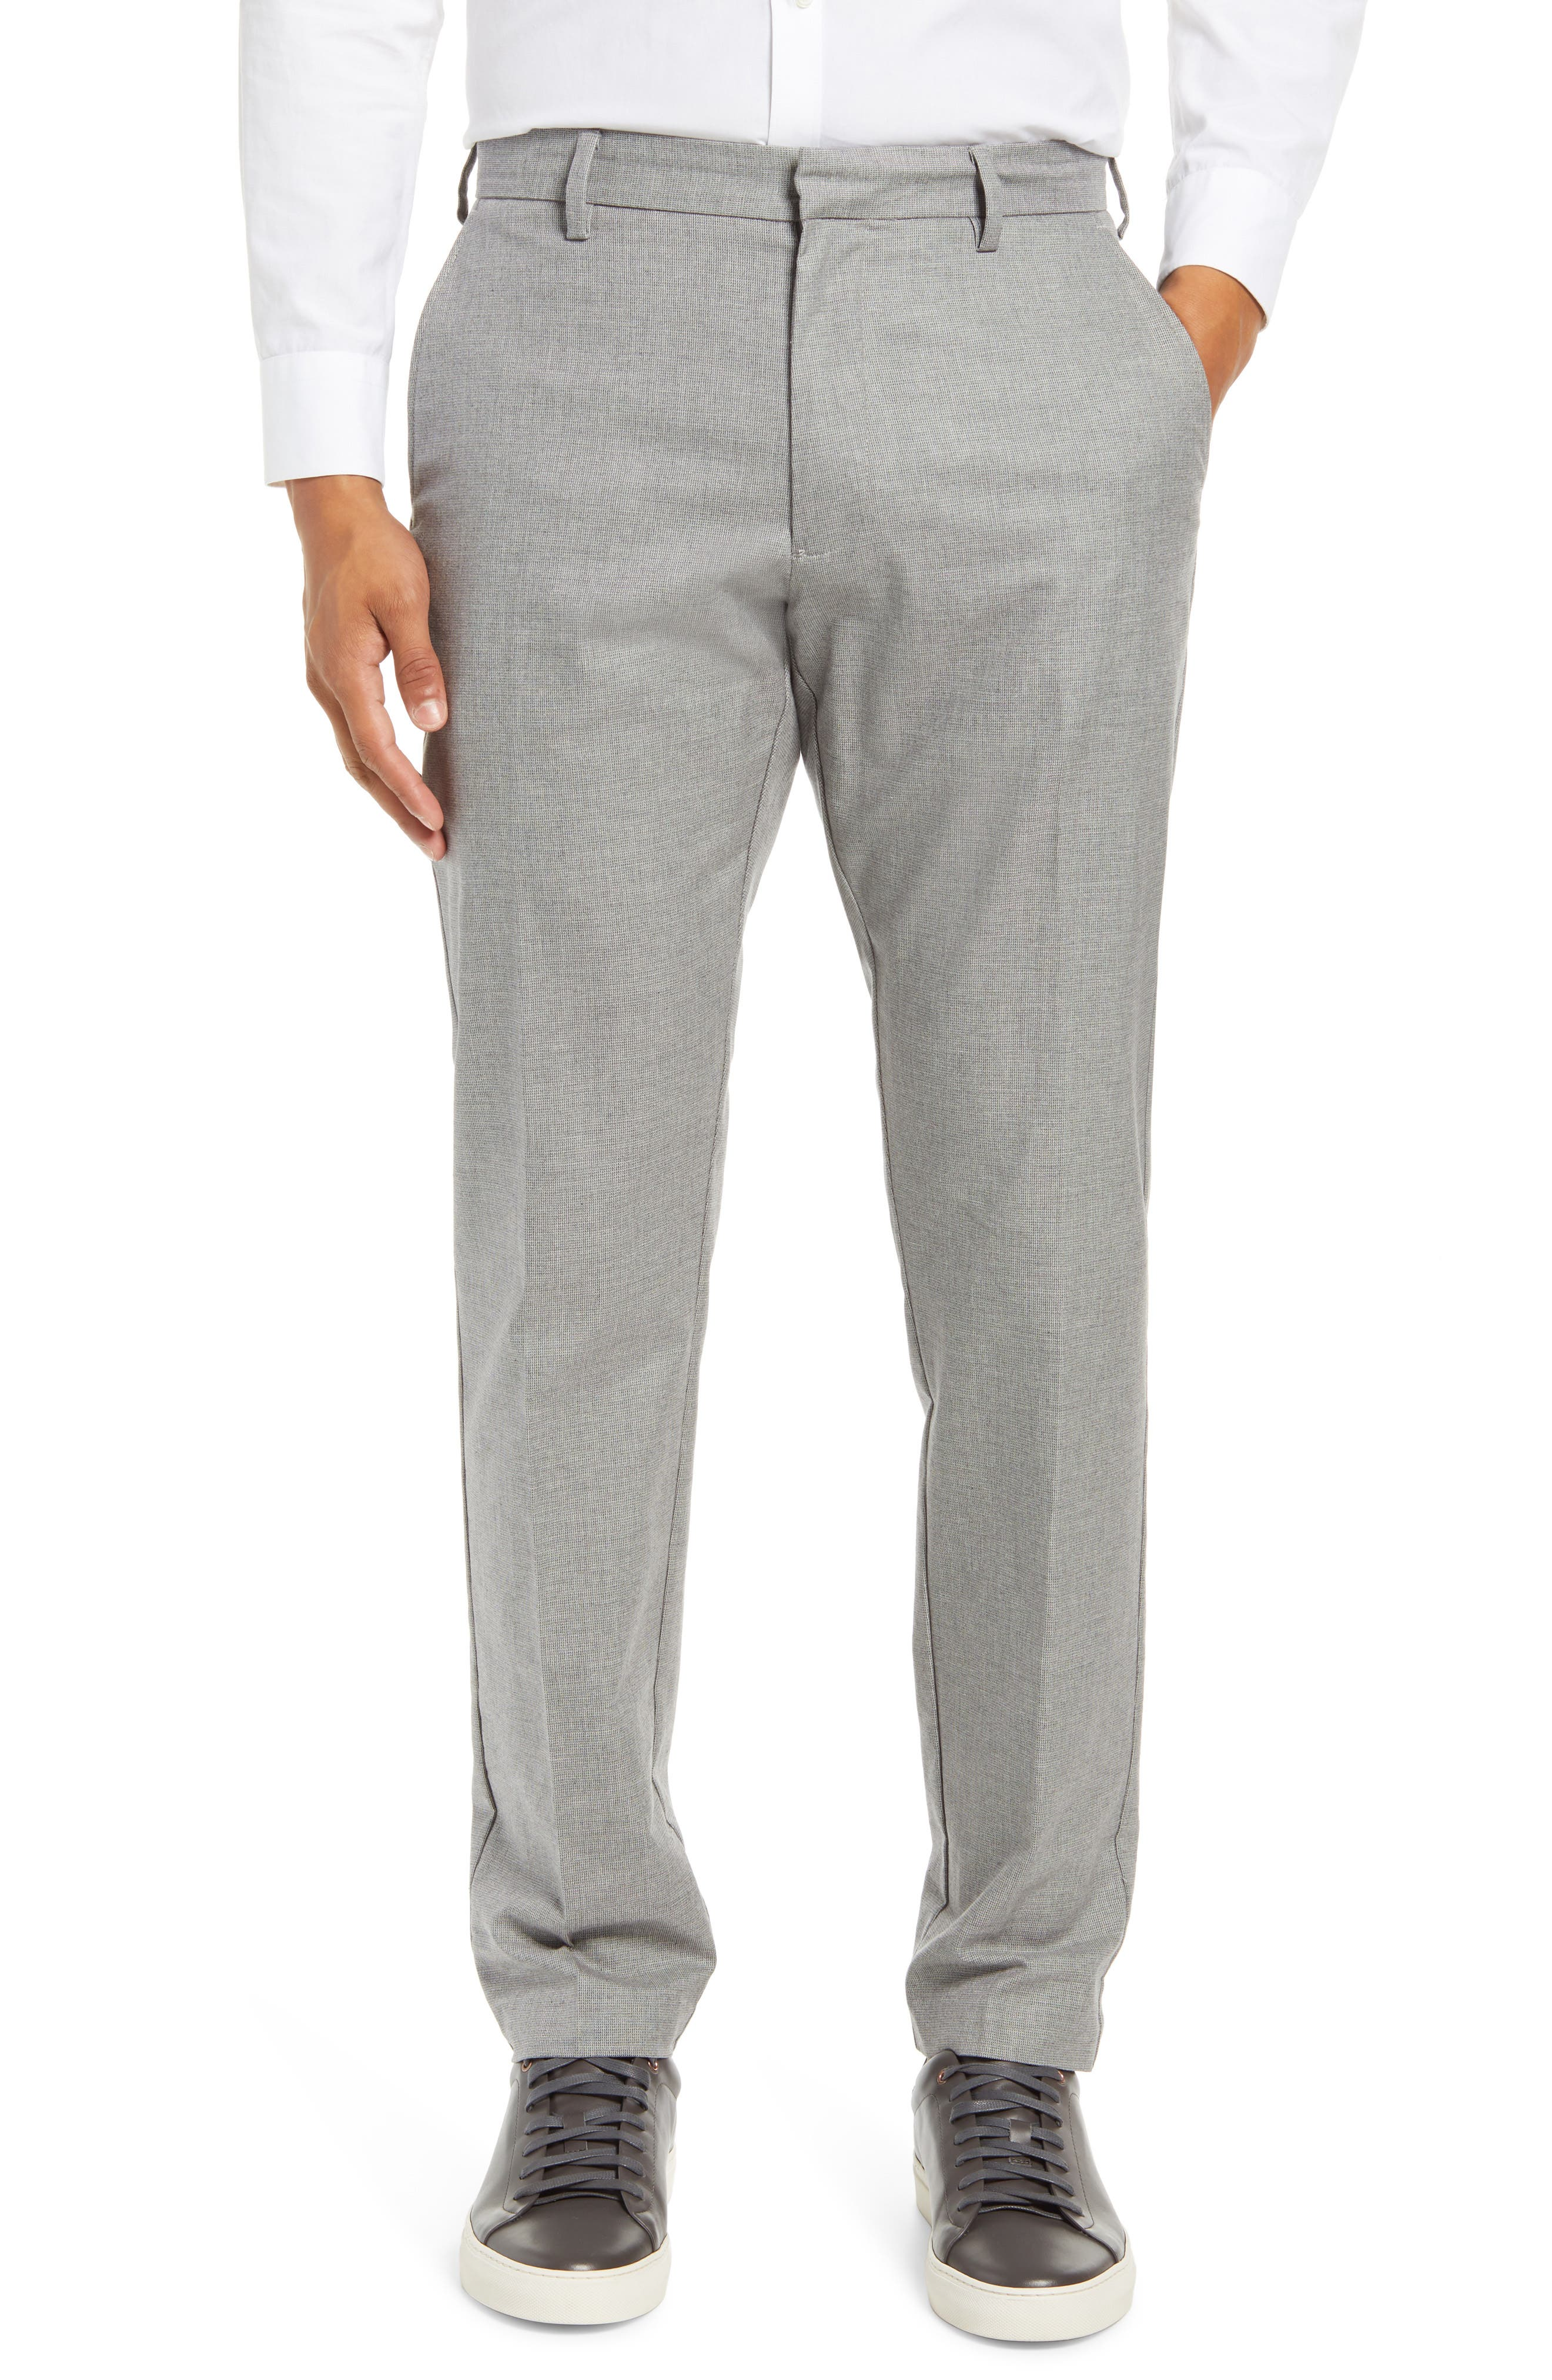 Image of NORDSTROM MEN'S SHOP Non-Iron Athletic Fit Textured Pants